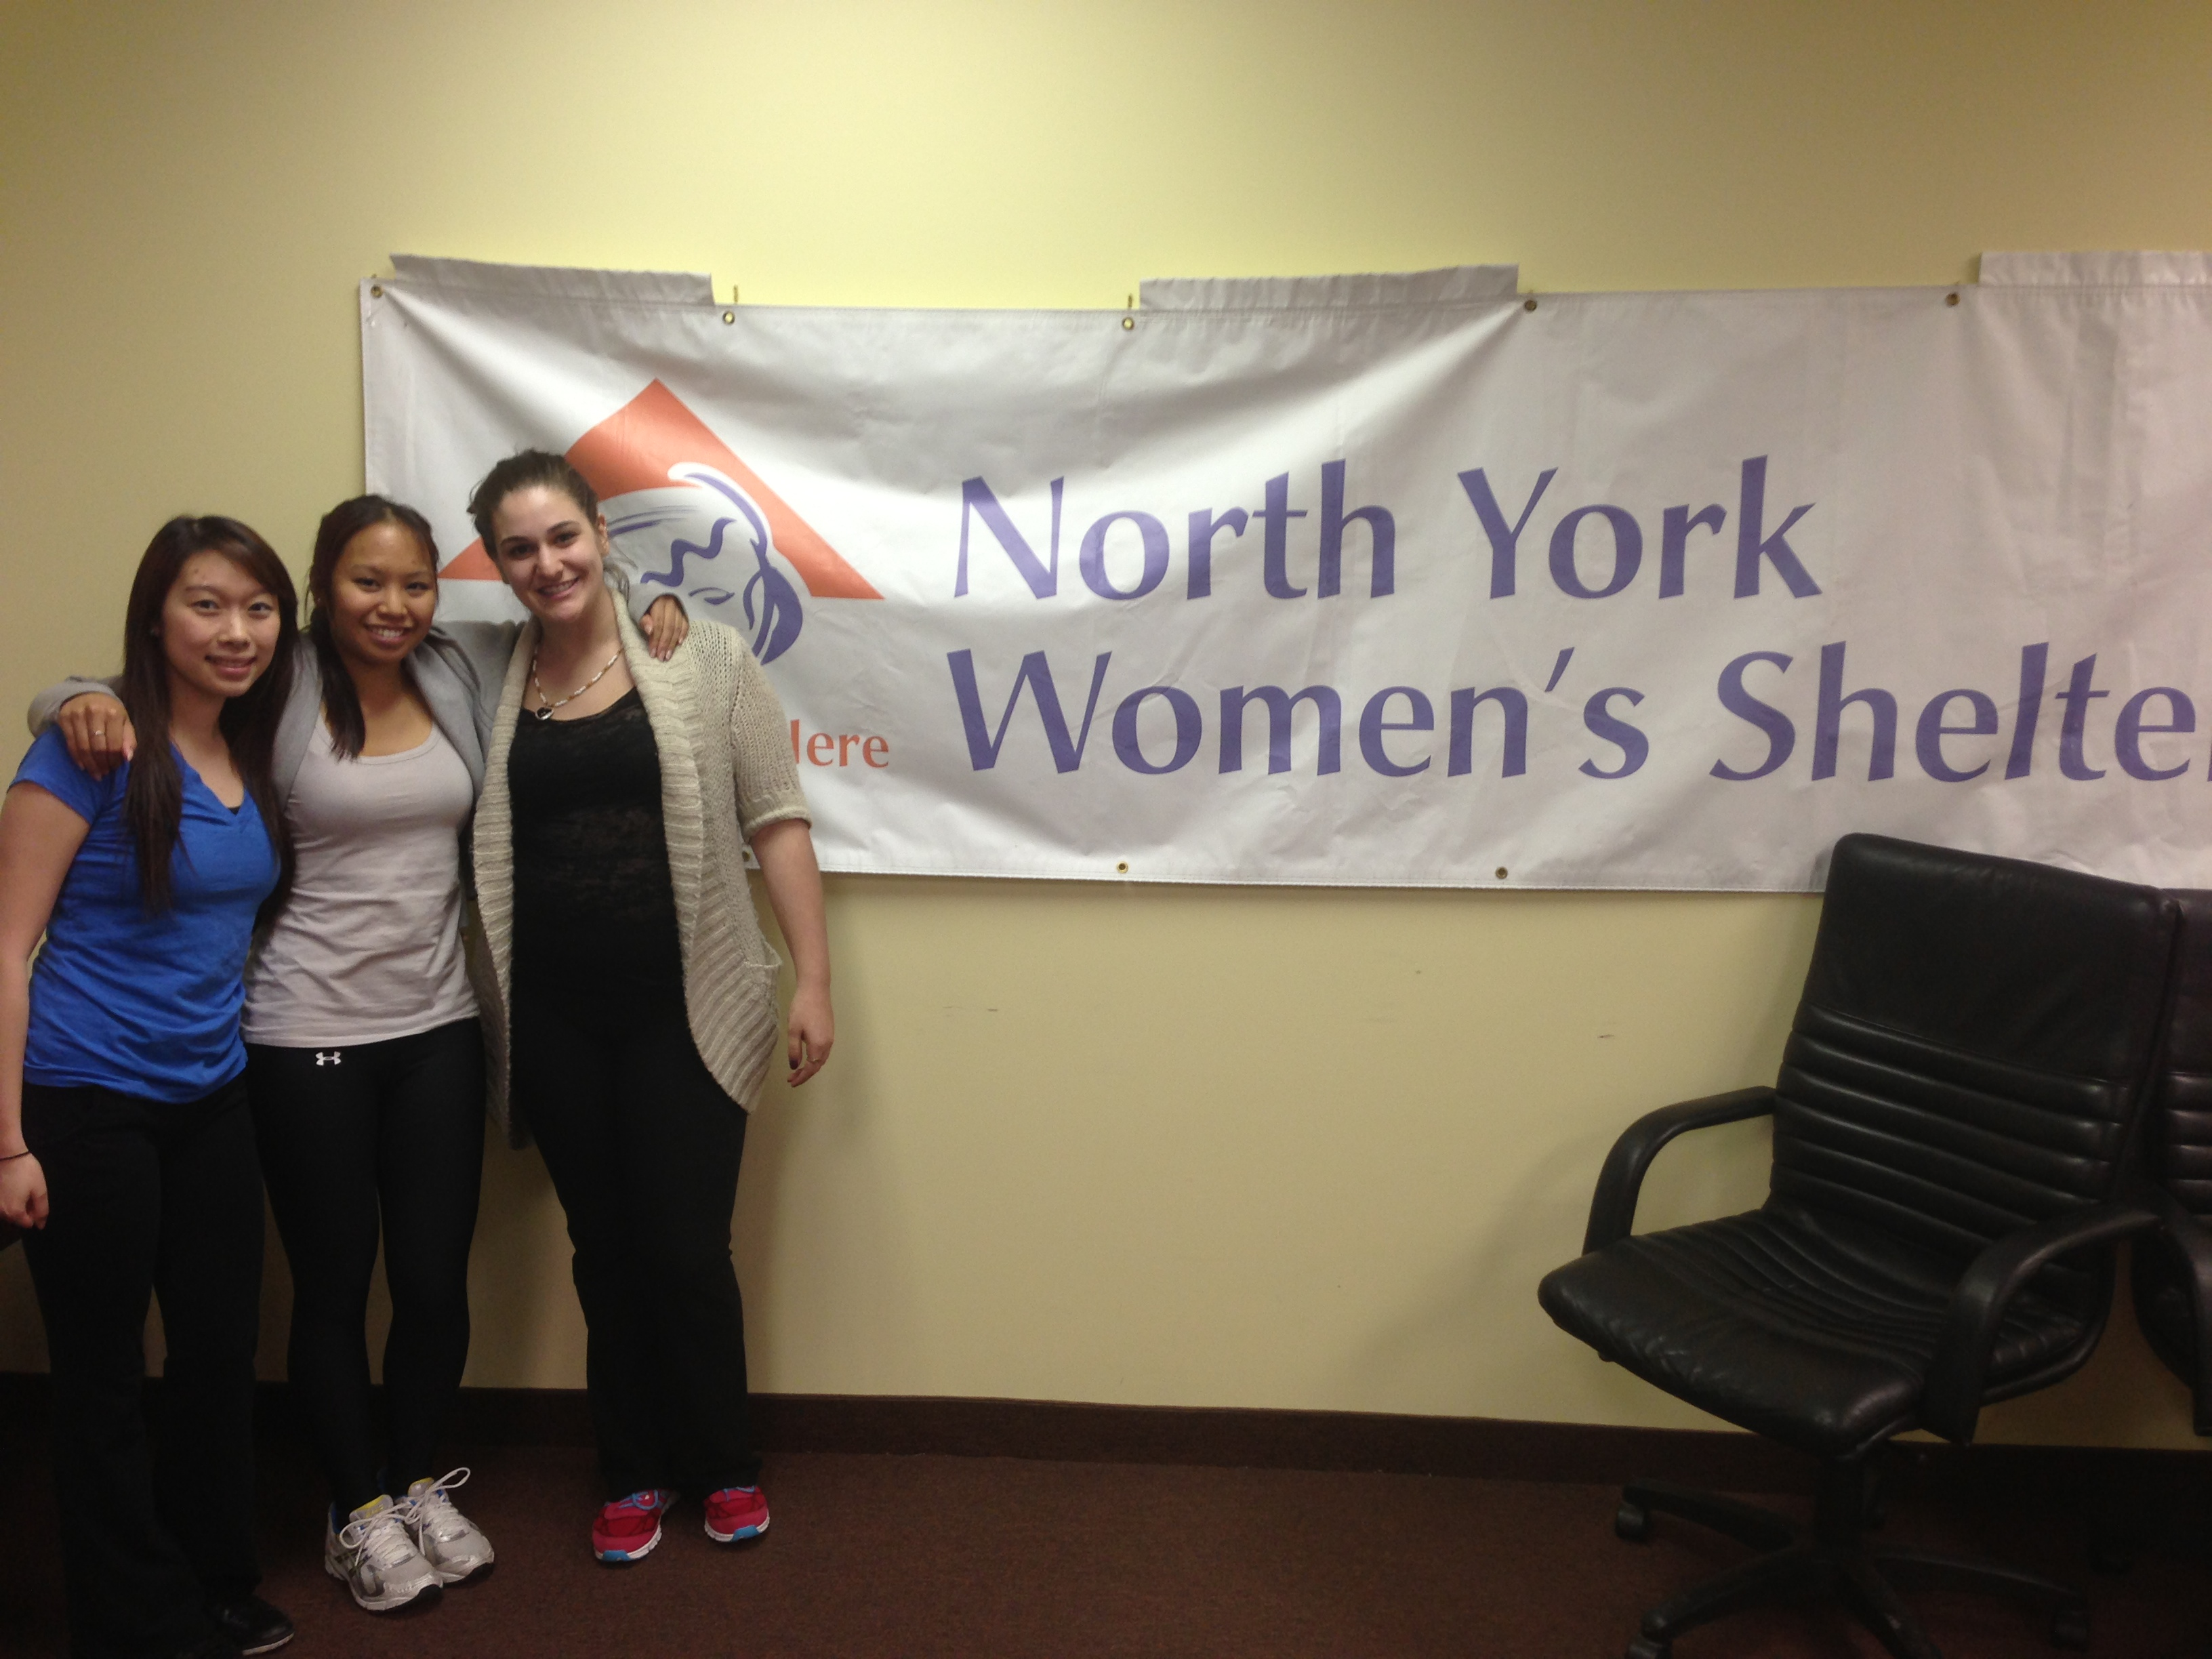 North York Women's Shelter